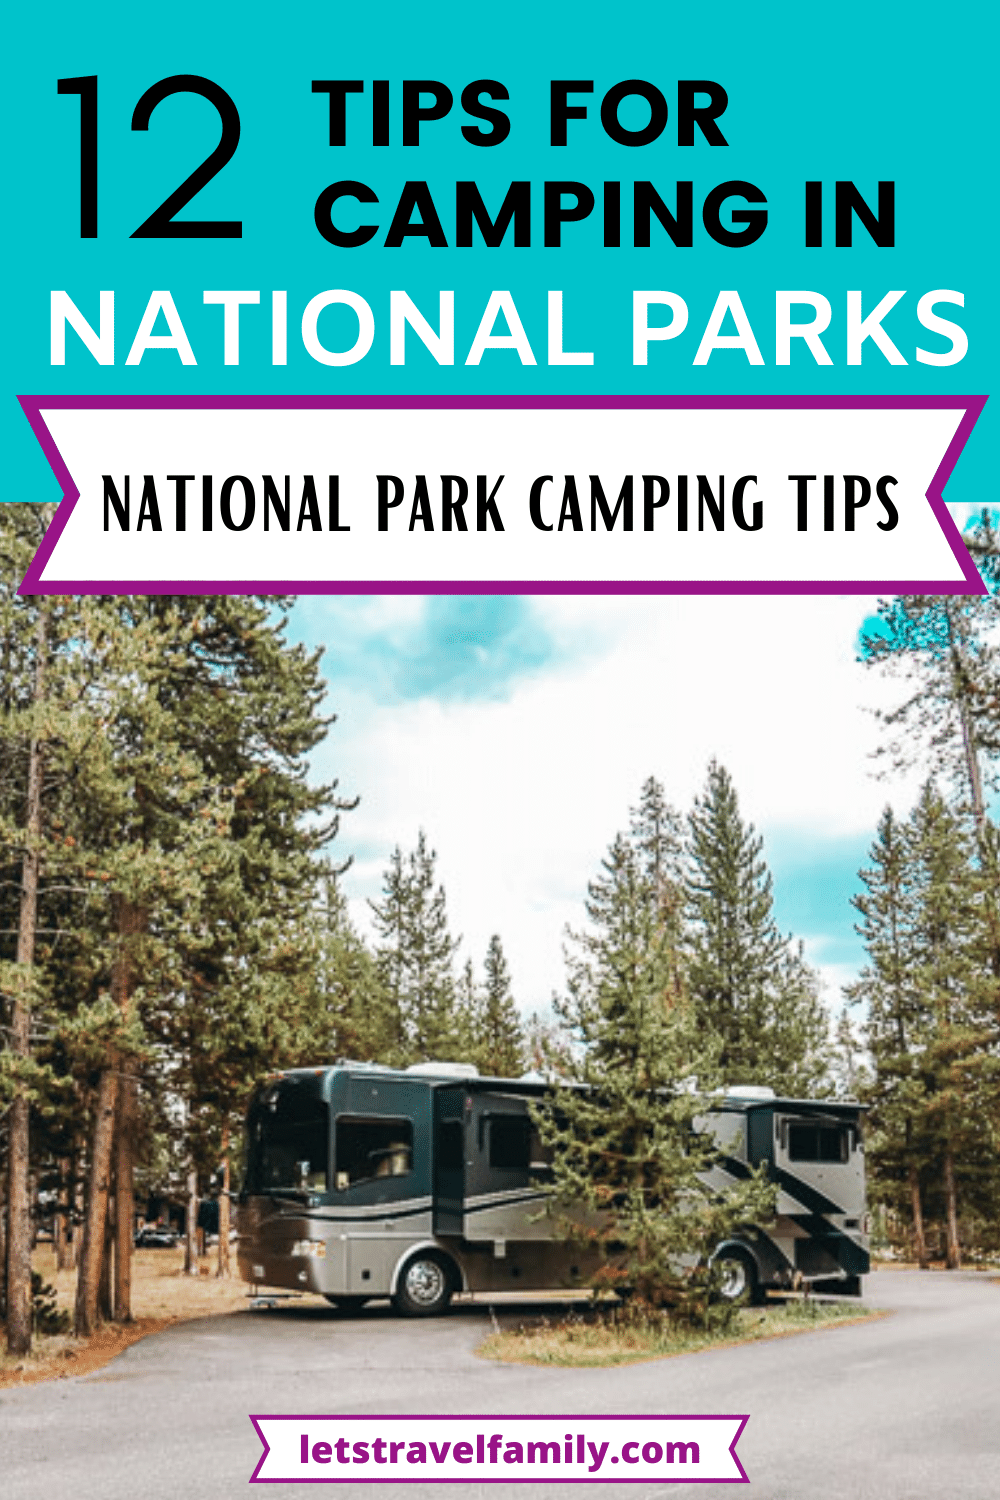 Tips For Camping In National Parks